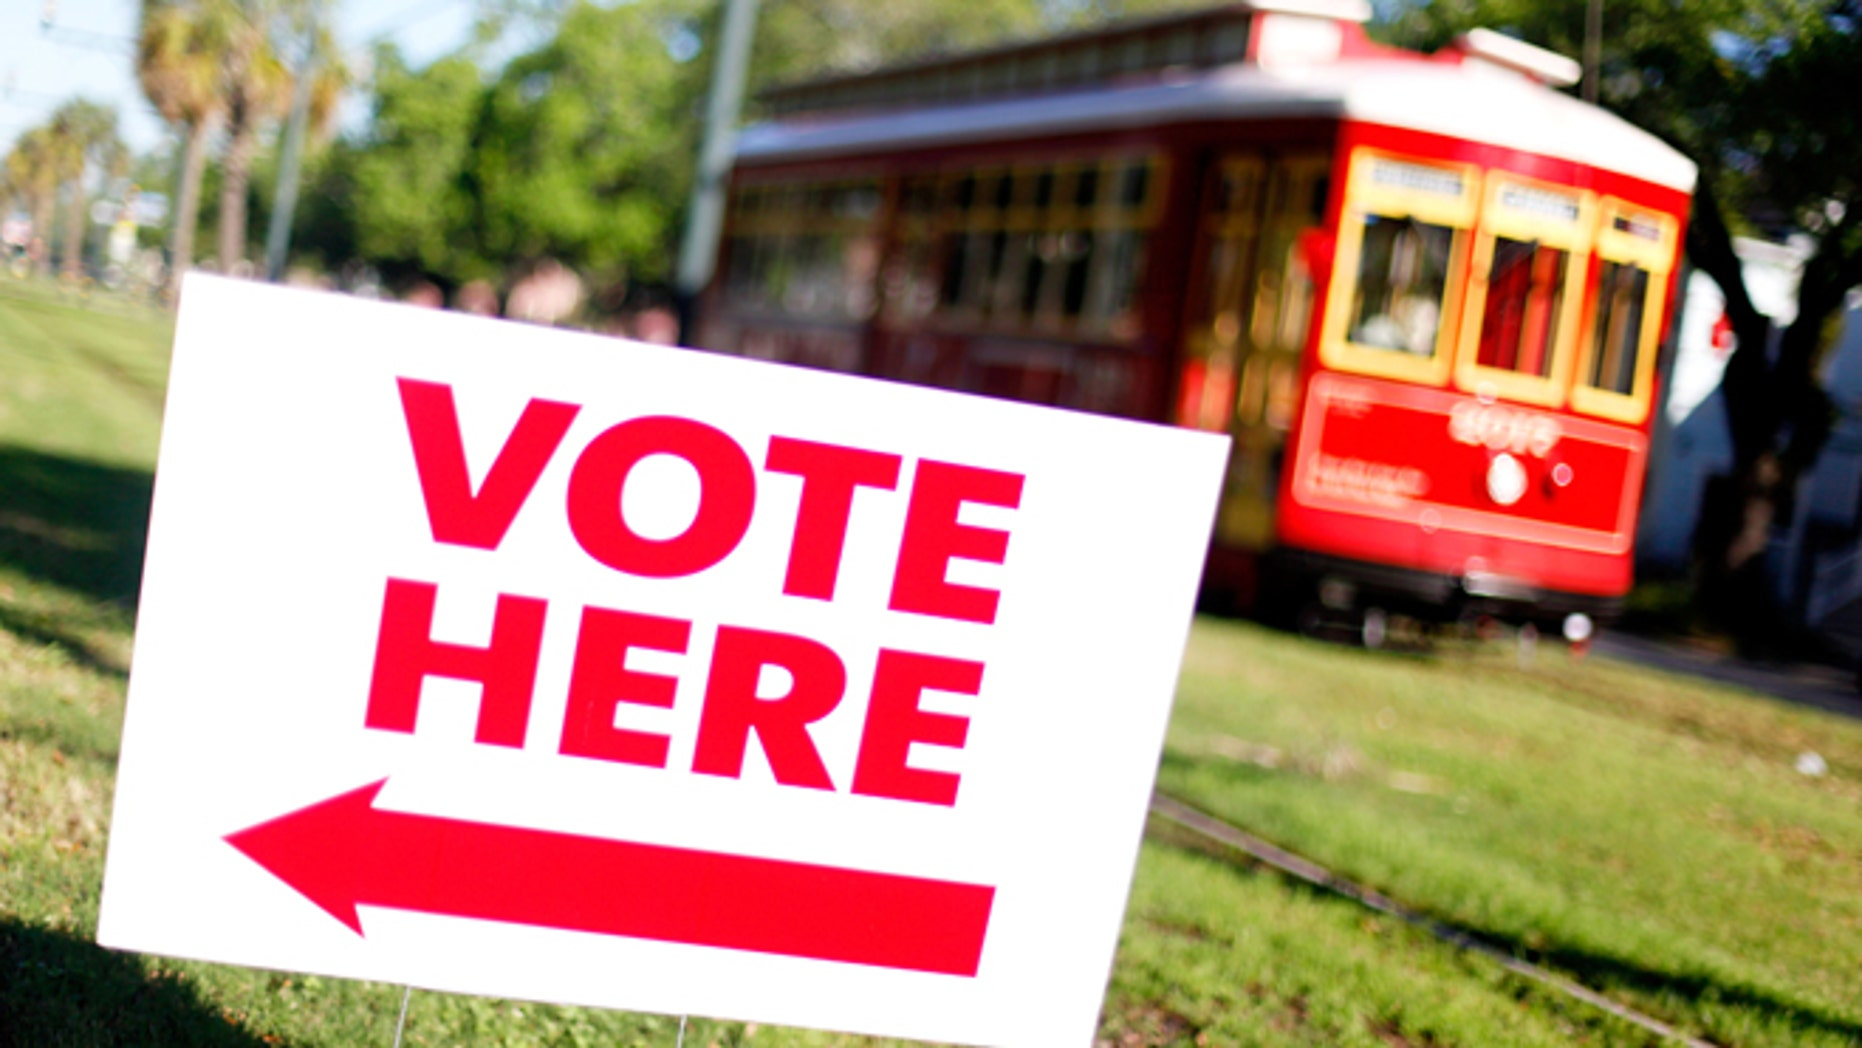 NEW ORLEANS, LA - MARCH 24:  A street car pases a voting station along St. Charles Avenue during the state Republican primary on March 24, 2012 in New Orleans, Louisiana. Voters go the polls to pick a candidate with 20 delegates up for grabs.  (Photo by Sean Gardner/Getty Images)